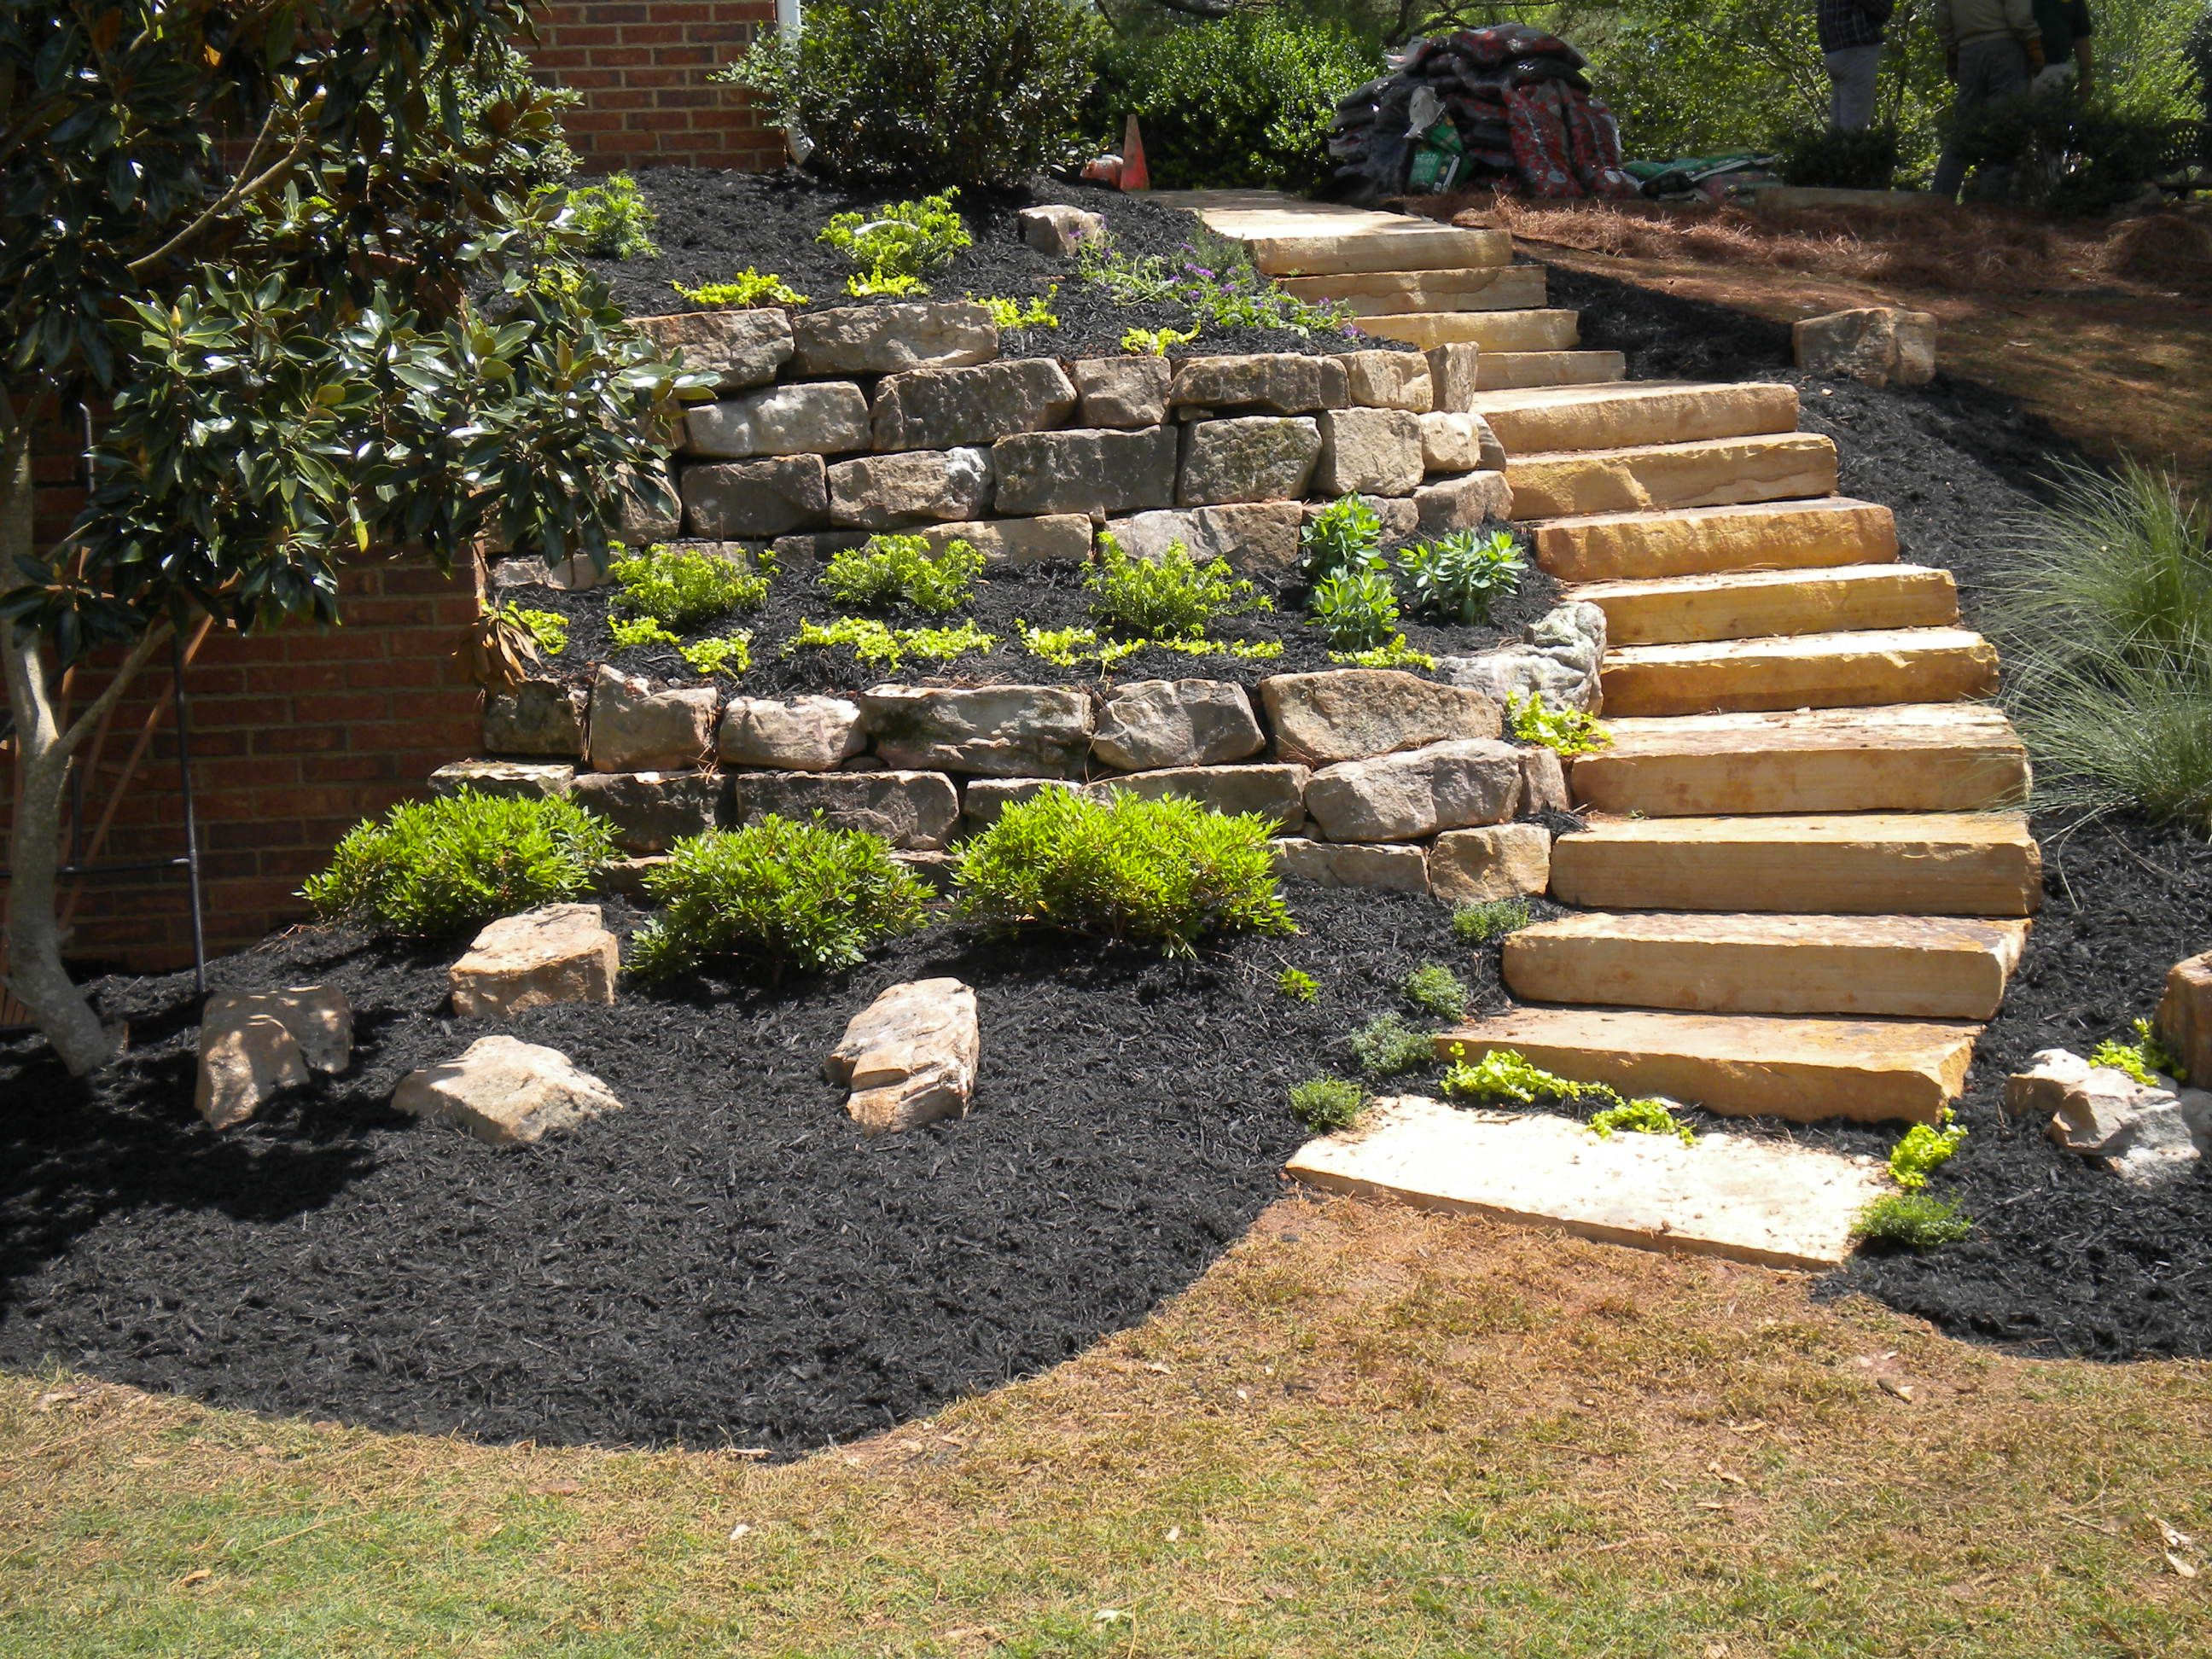 Project Example 1 After Pikes Nursery Landscape Design Services Nursery Landscape Design Landscape Design